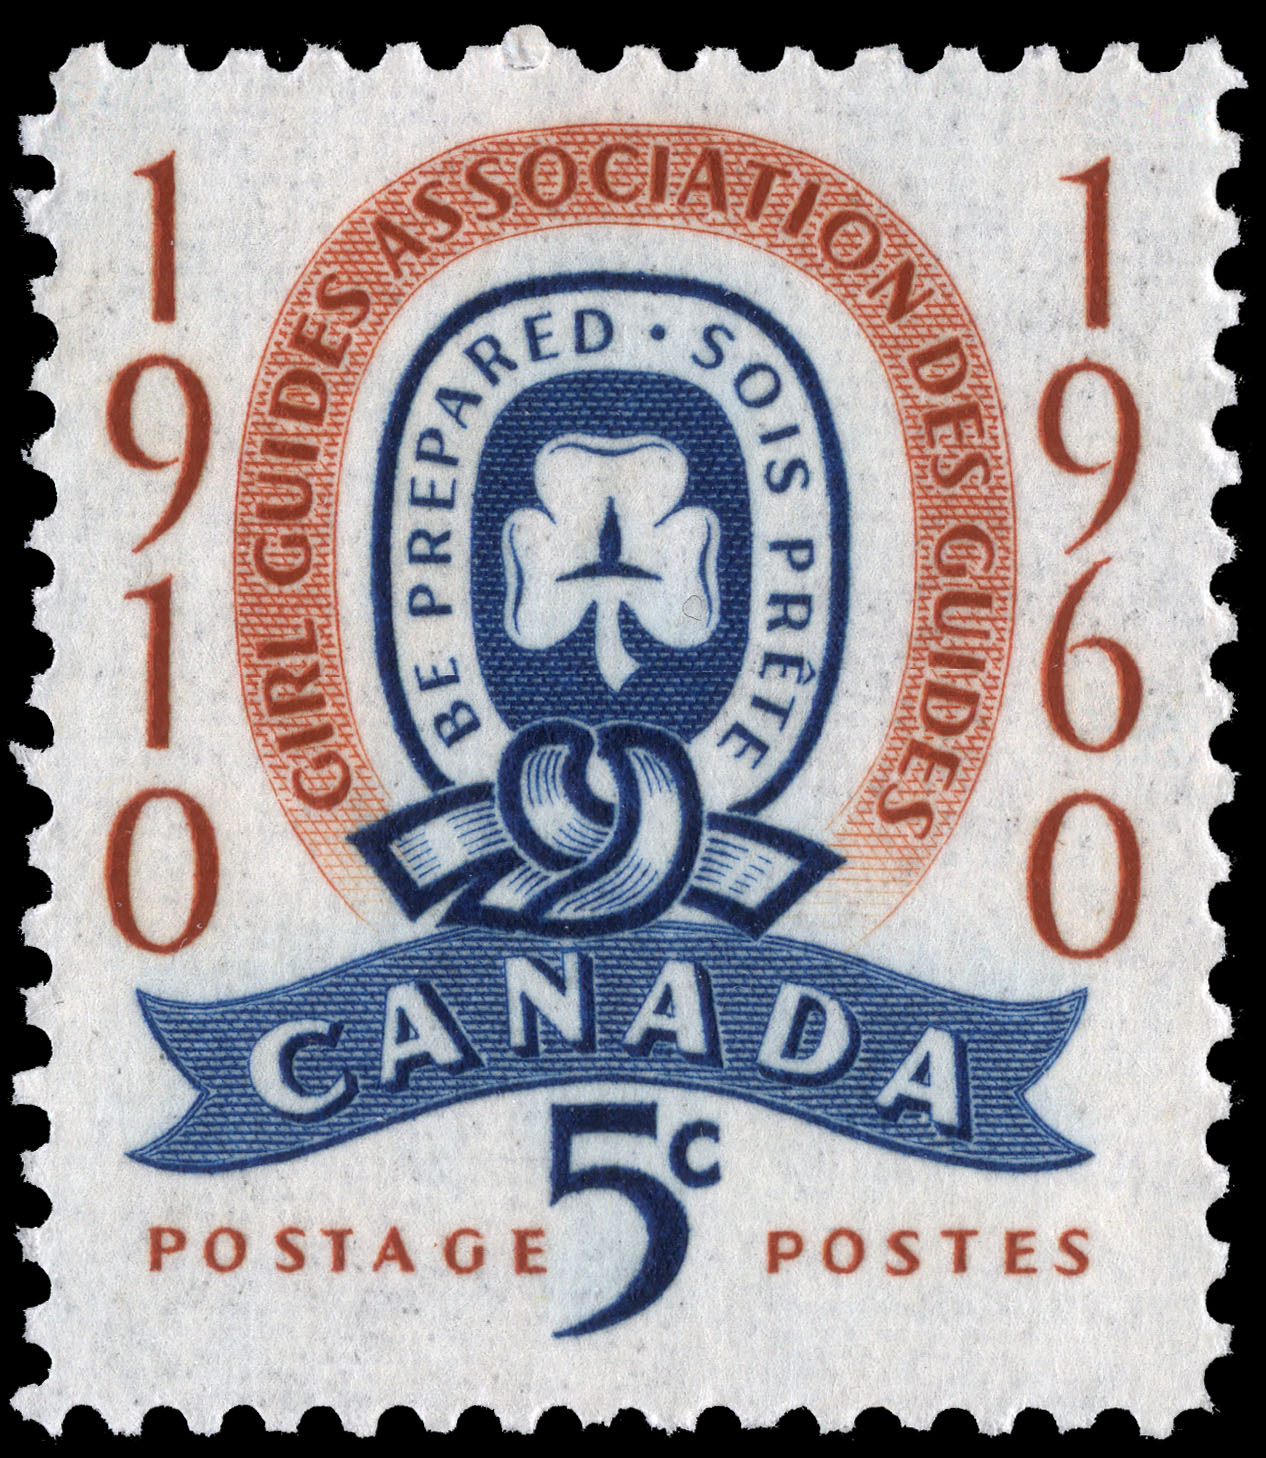 Girl Guides Association, 1910-1960, Be Prepared Canada Postage Stamp